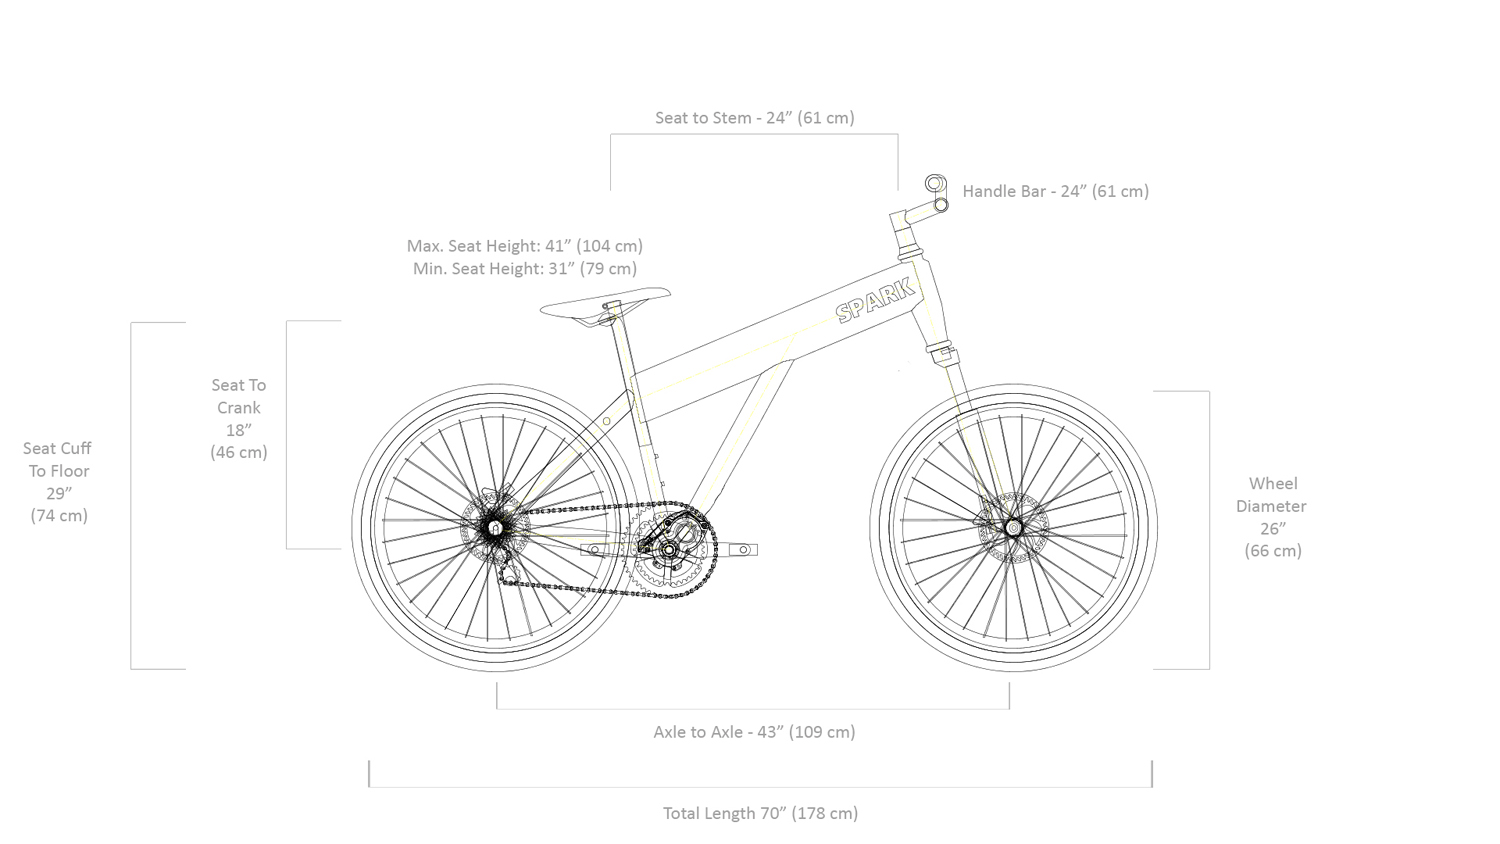 Bike structure length diagram